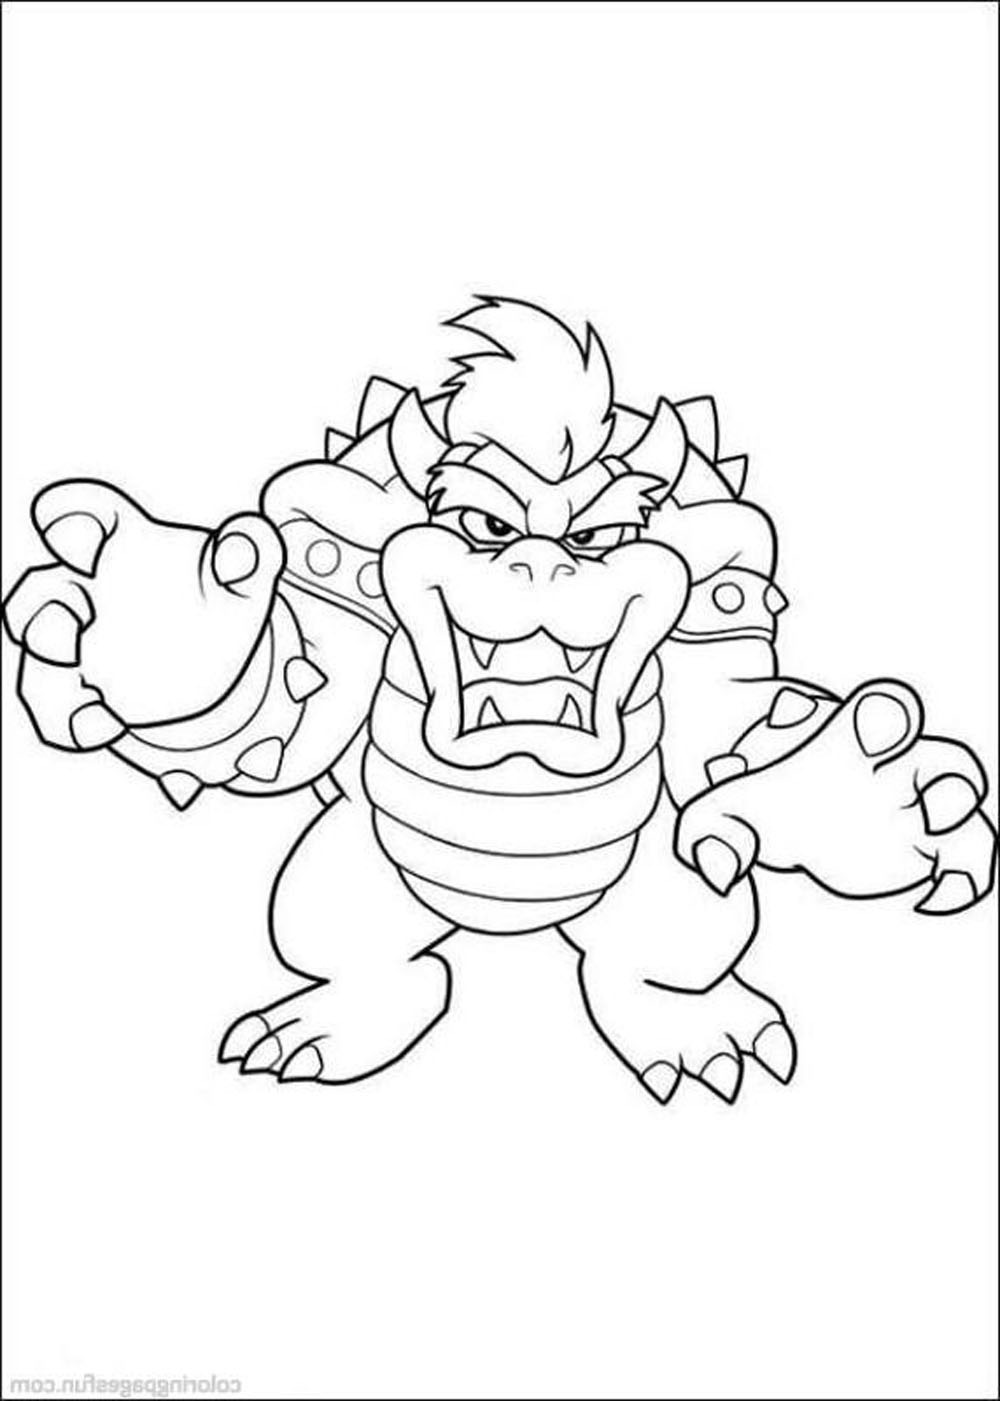 super mario galaxy 2 coloring pages printable coloring pages wii super mario galaxy 2 mario galaxy coloring super pages